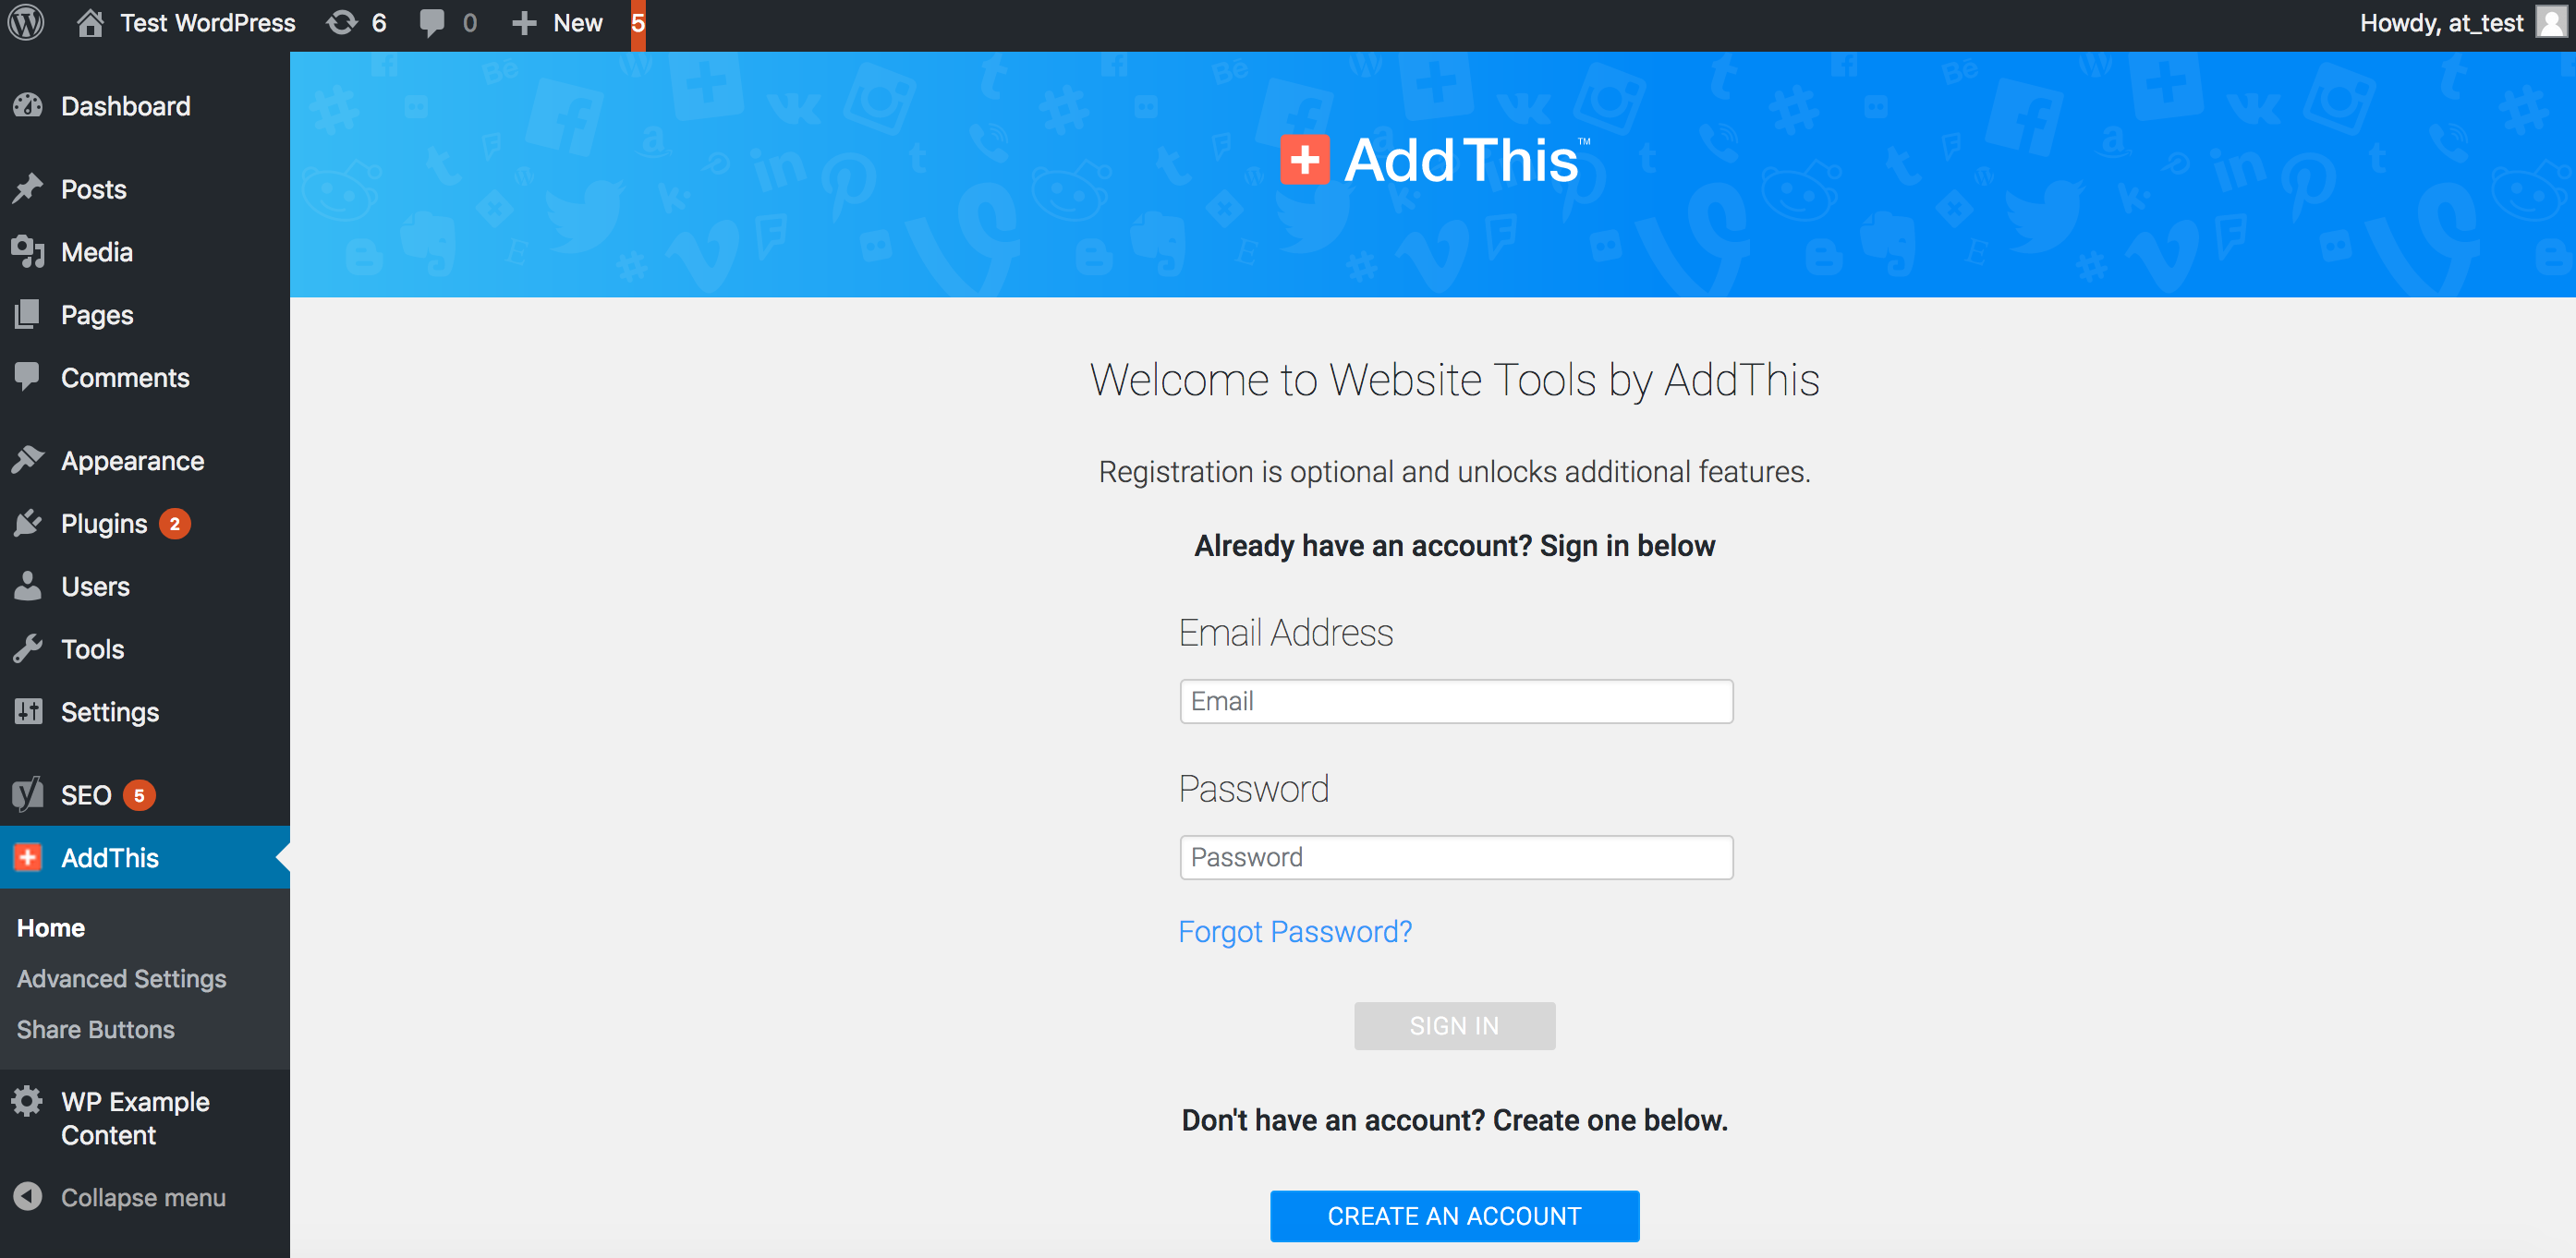 How to Install the AddThis Plugin on WordPress - AddThis